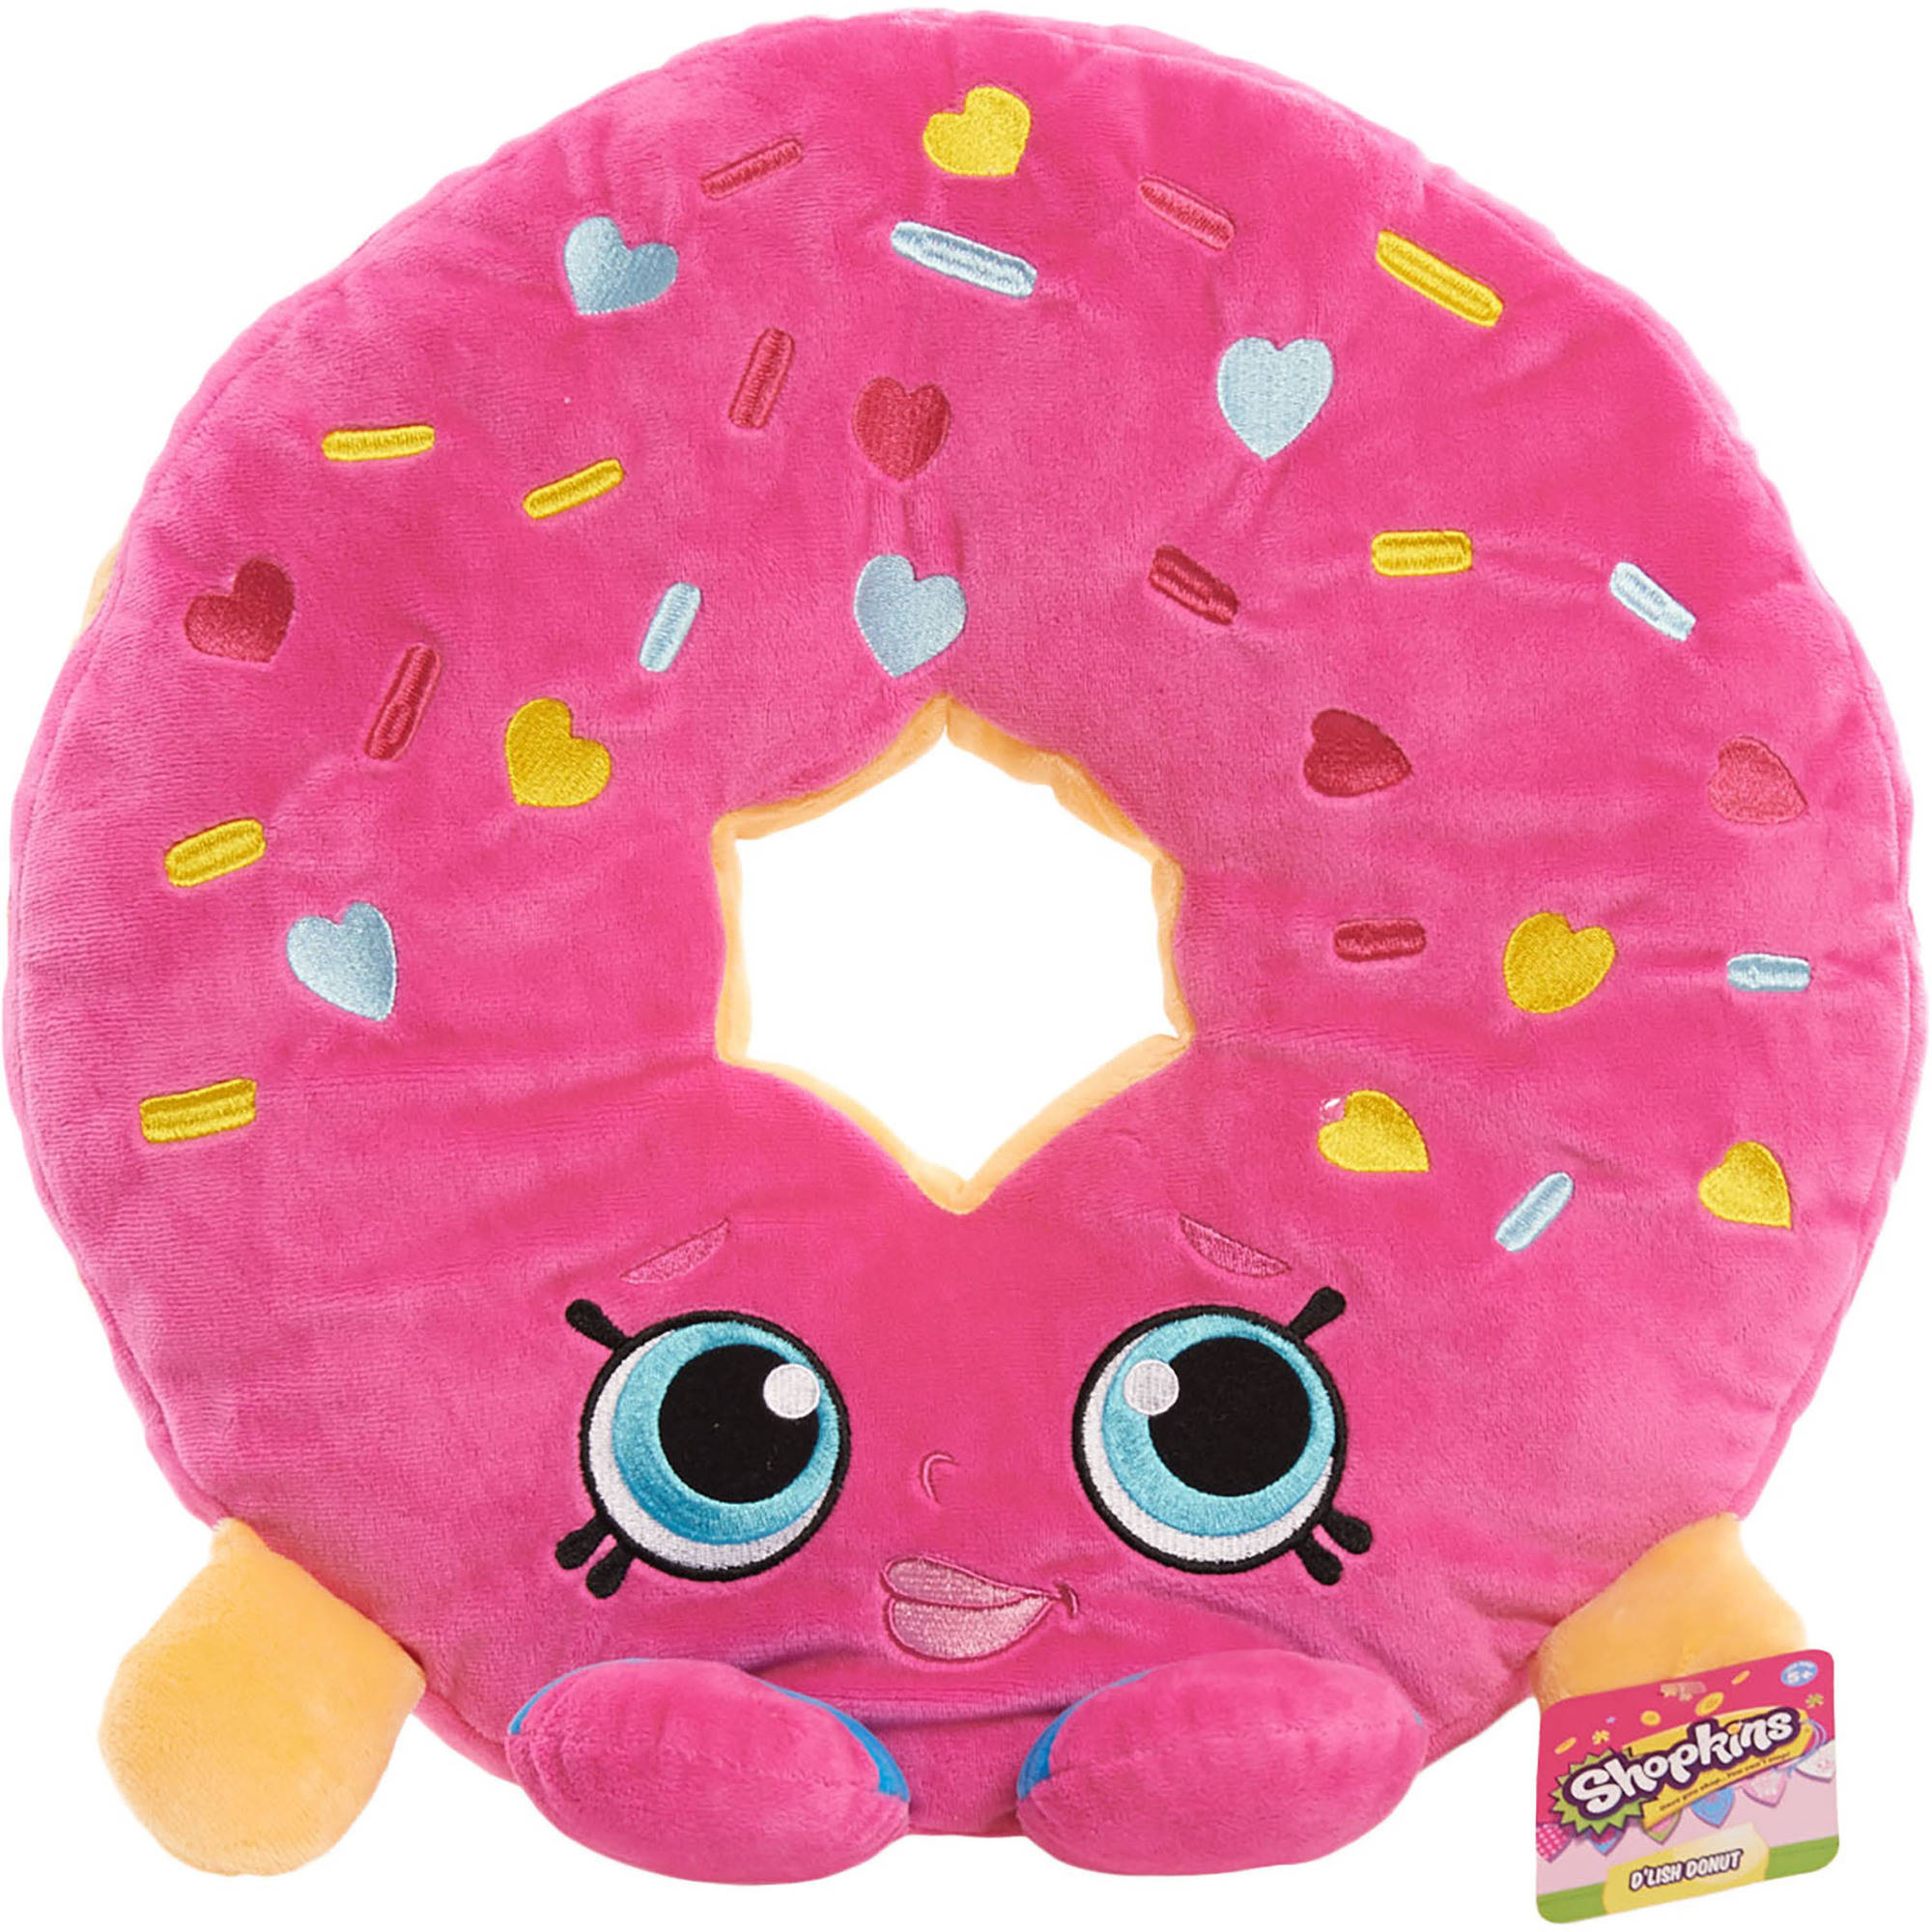 Shopkins Cuddle Pillow, D'lish Donut